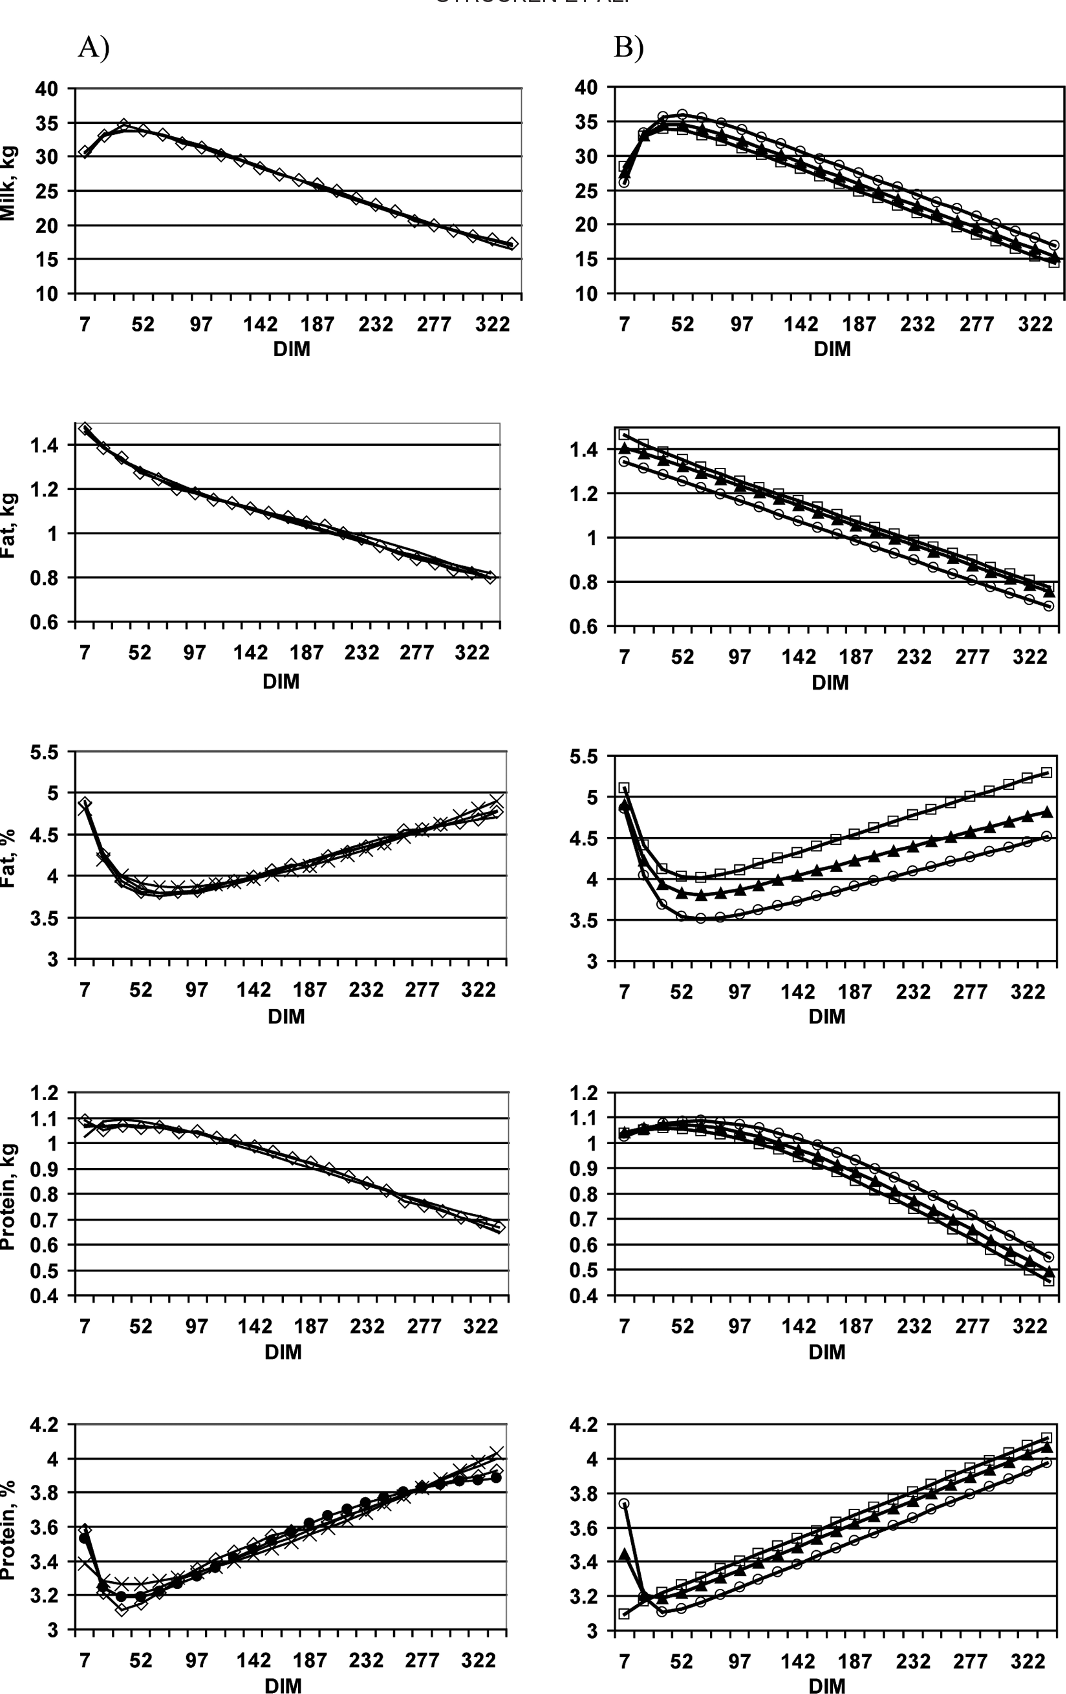 Figure 1. A) Production curves predicted with the Wilmink, Wood, and Ali and Schaeffer models and compared with the real production curve of the population. If curves overlap with the real data curve, they are shown just as a line. ◊ = real data curve, × = Wood curve, = Ali and Schaeffer curve. B) Production curves predicted with the Wilmink model for the different genotypes of the DGAT1 K232A locus: AA ( ), KA ( ), and KK (□).